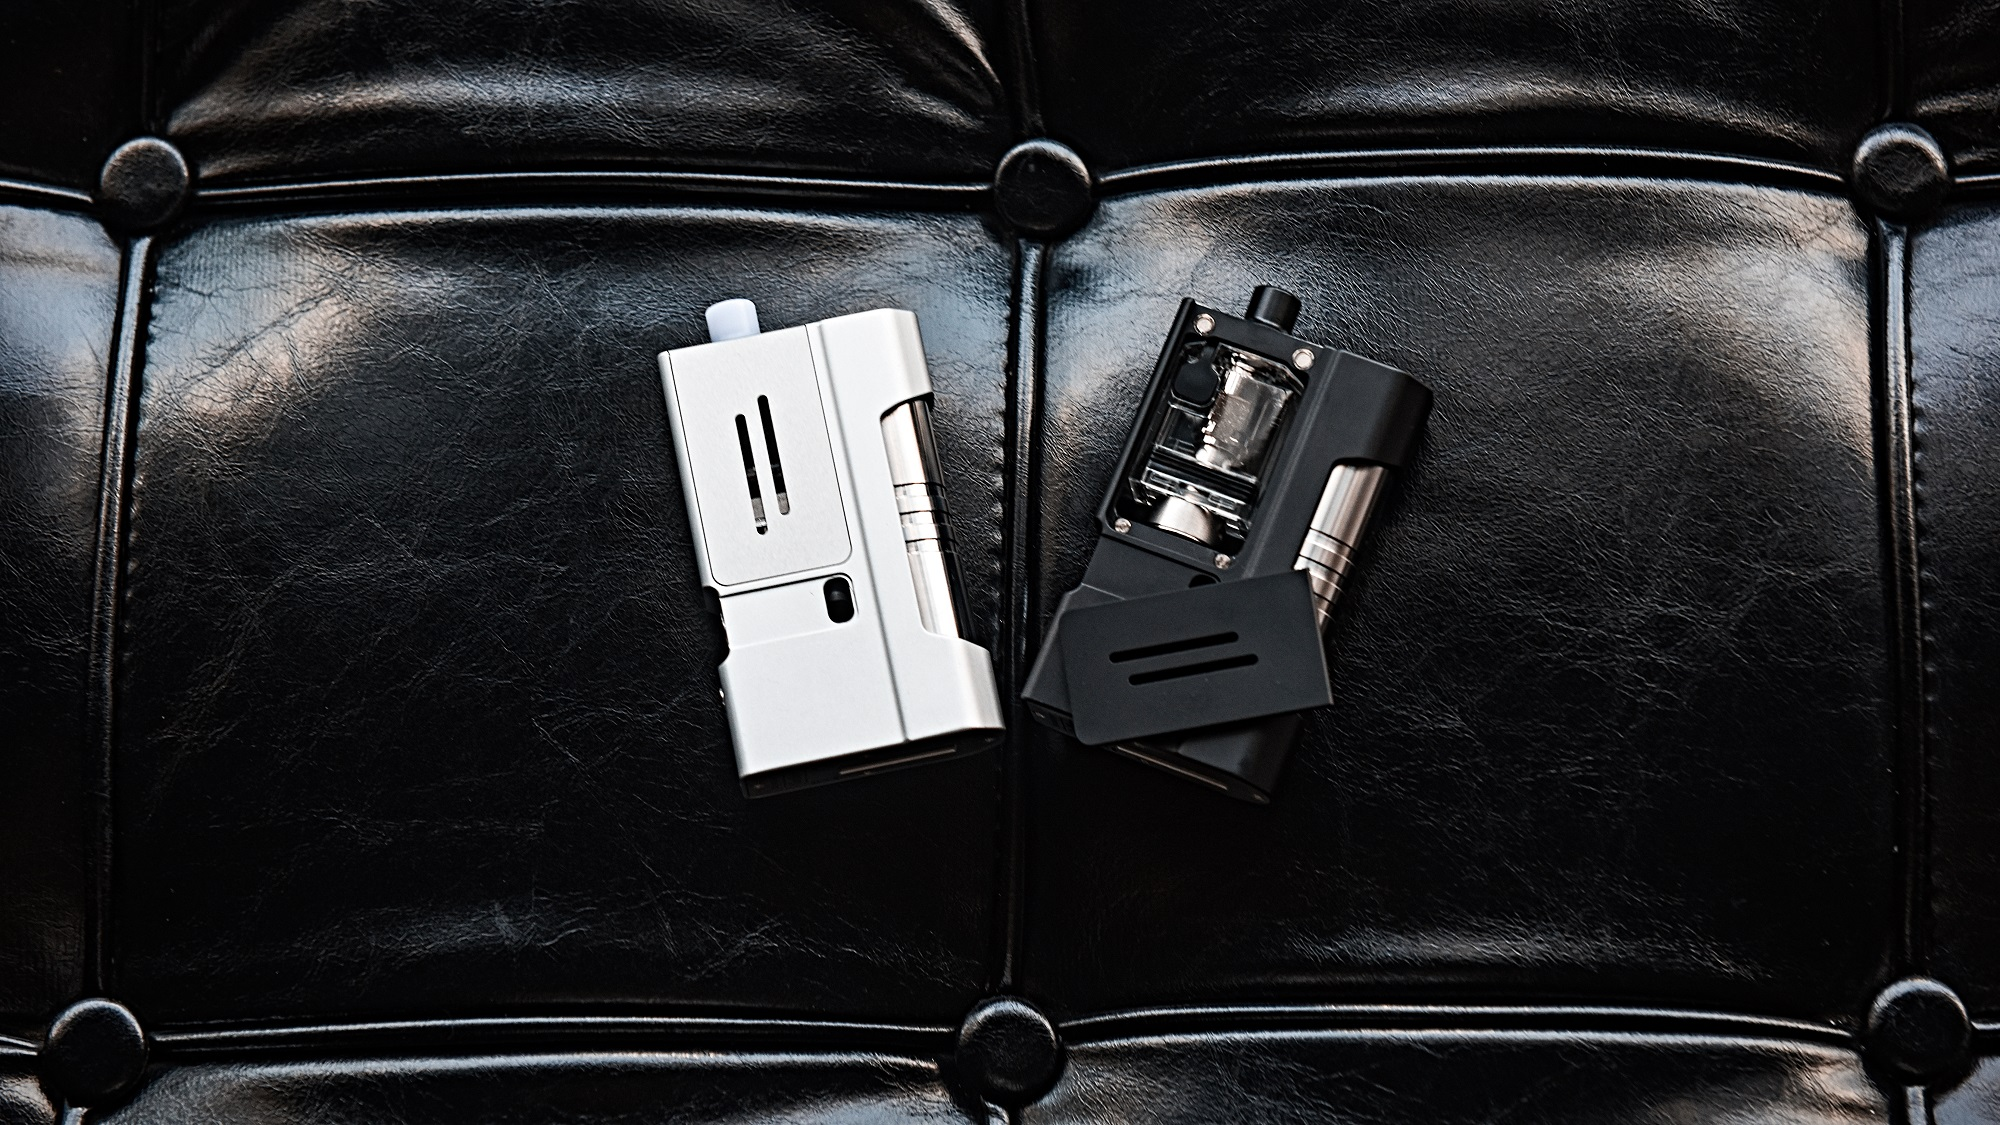 New Aspire Prestige Boxx Designed by Sunbox and Atmizoo